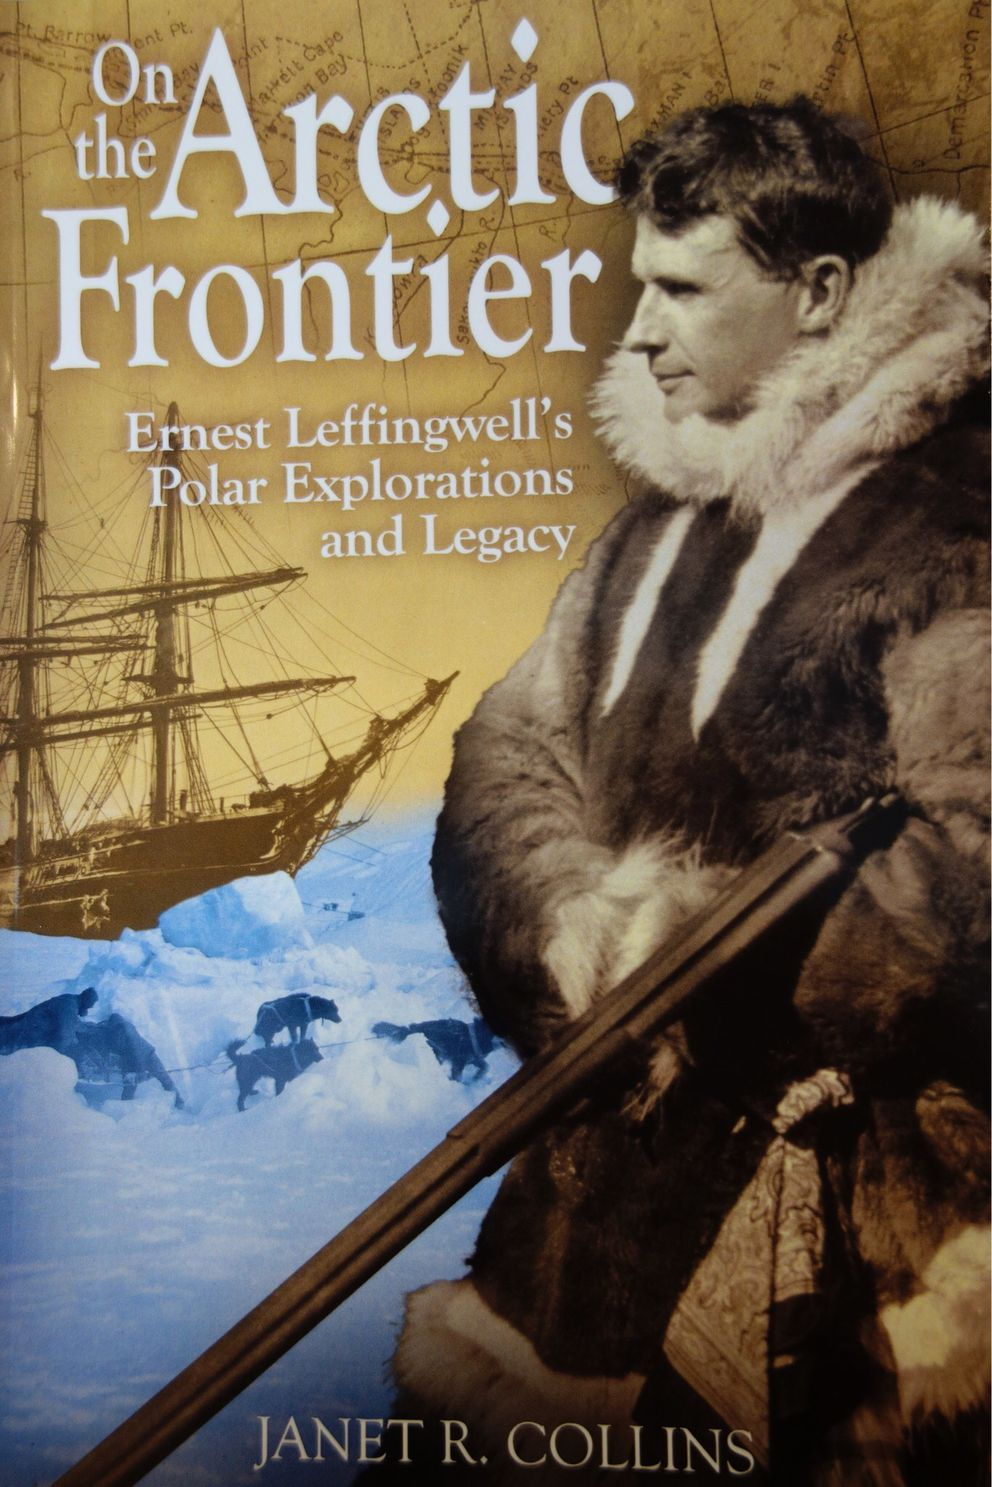 The cover of Janet Collins's new book about Ernest Leffingwell.